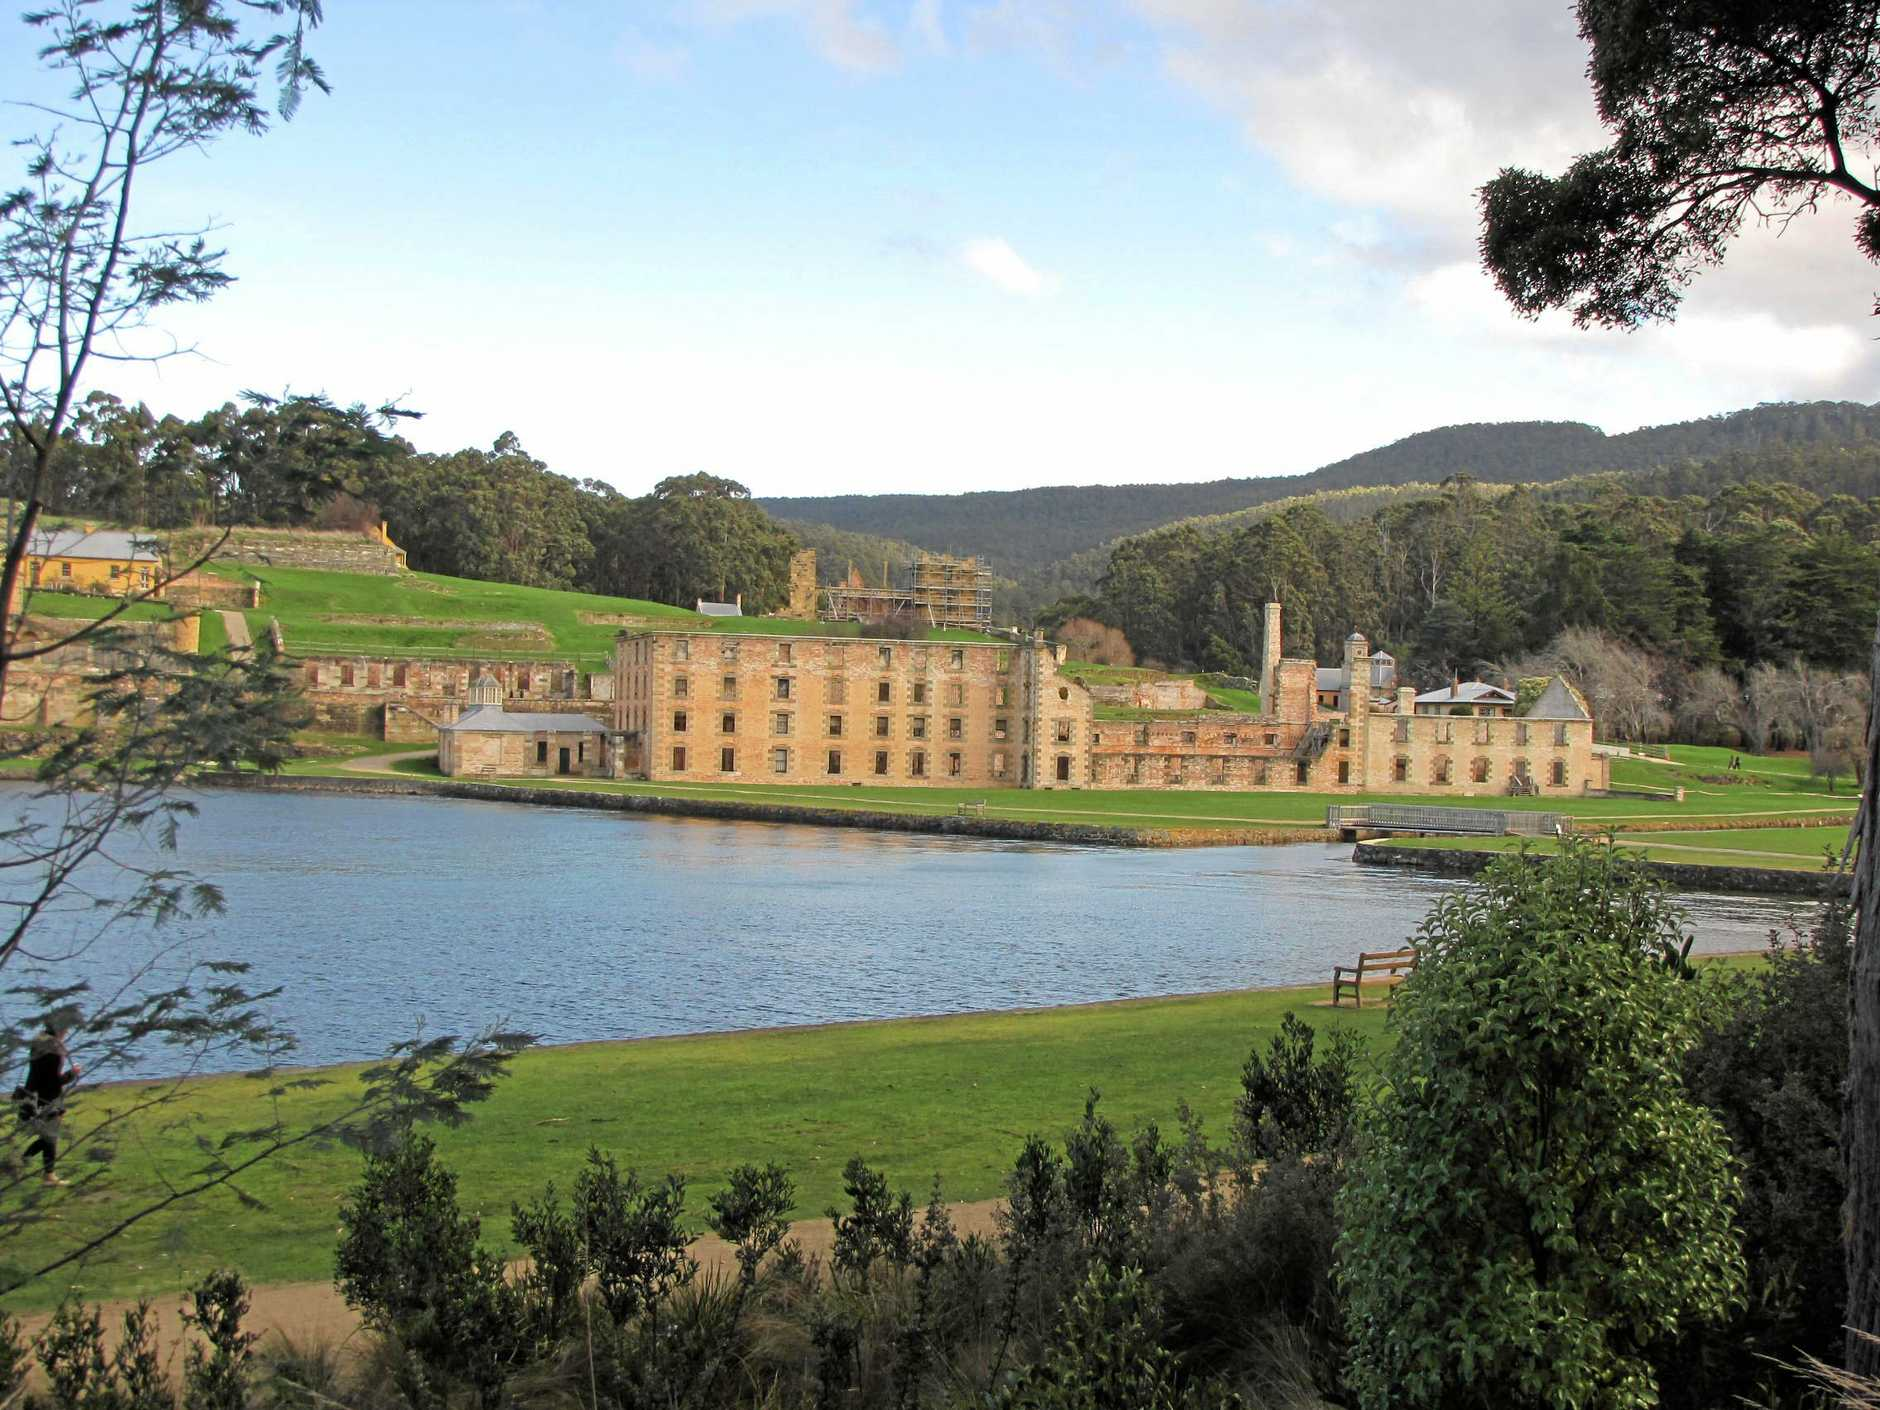 Karen Holmes Weekend. The penitentiary at Port Arthur which was built in 1857. During its time, it had three floors, the two lower floors had 136 cells while the top floor housed 480 convicts.